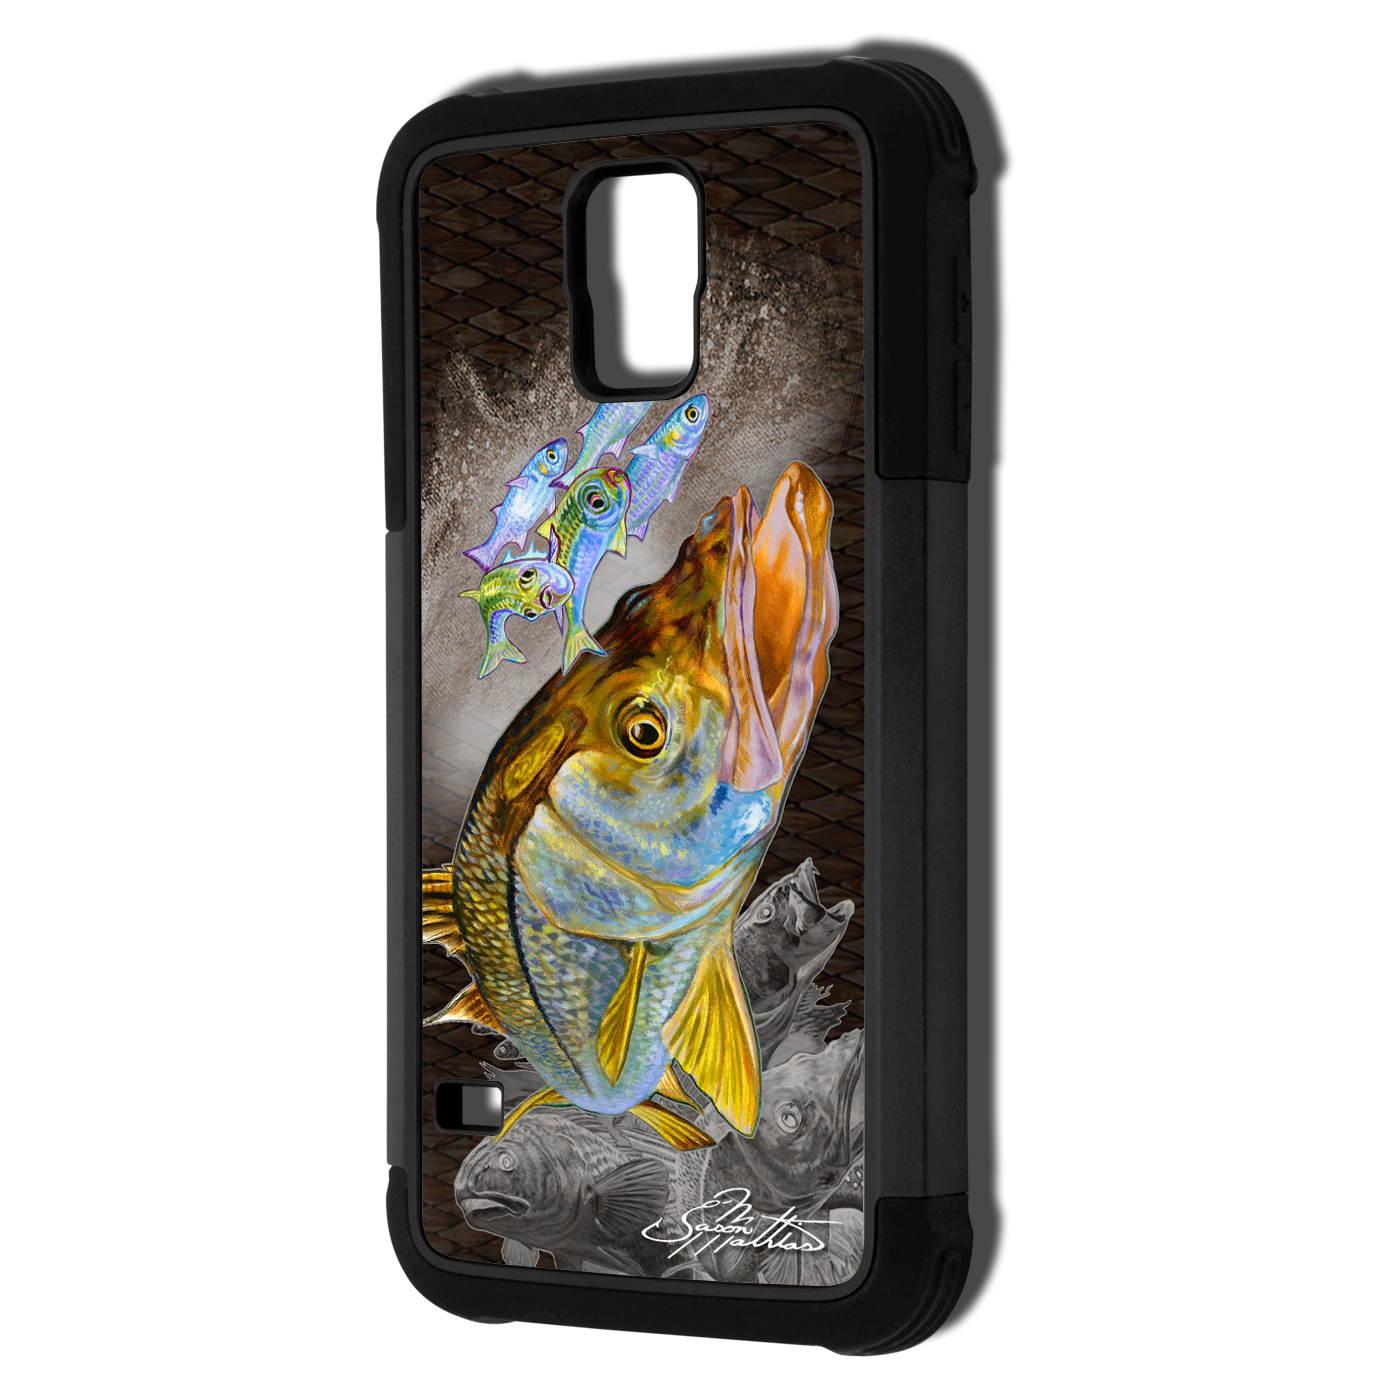 samsung-galaxy-s5-snook.png